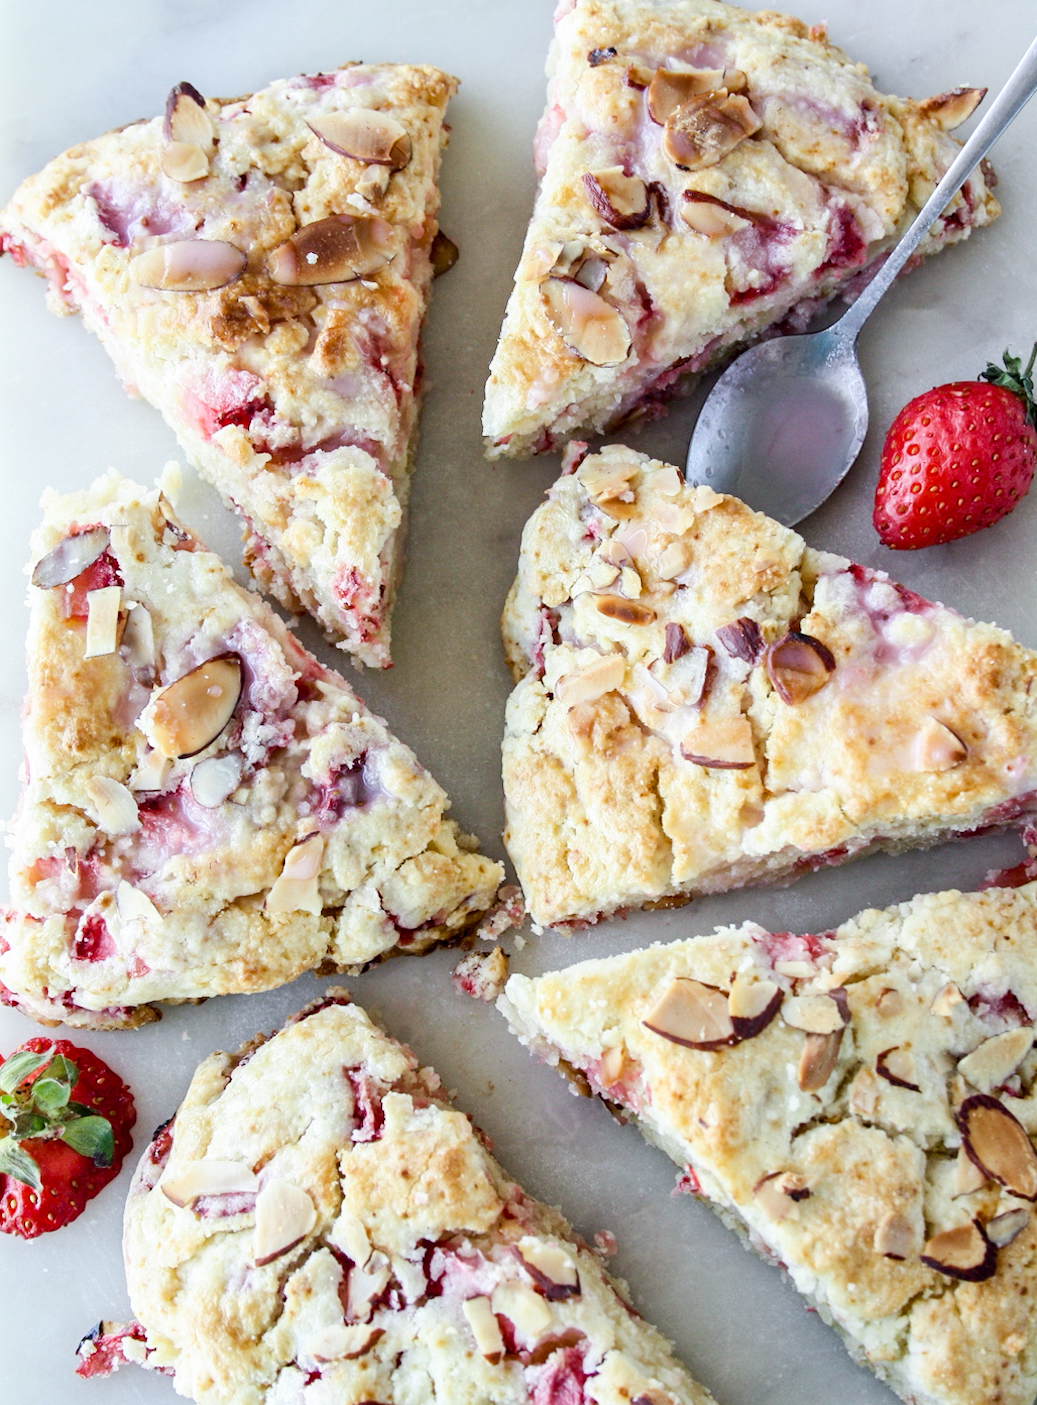 Tender, buttery scones made with strawberries and cream